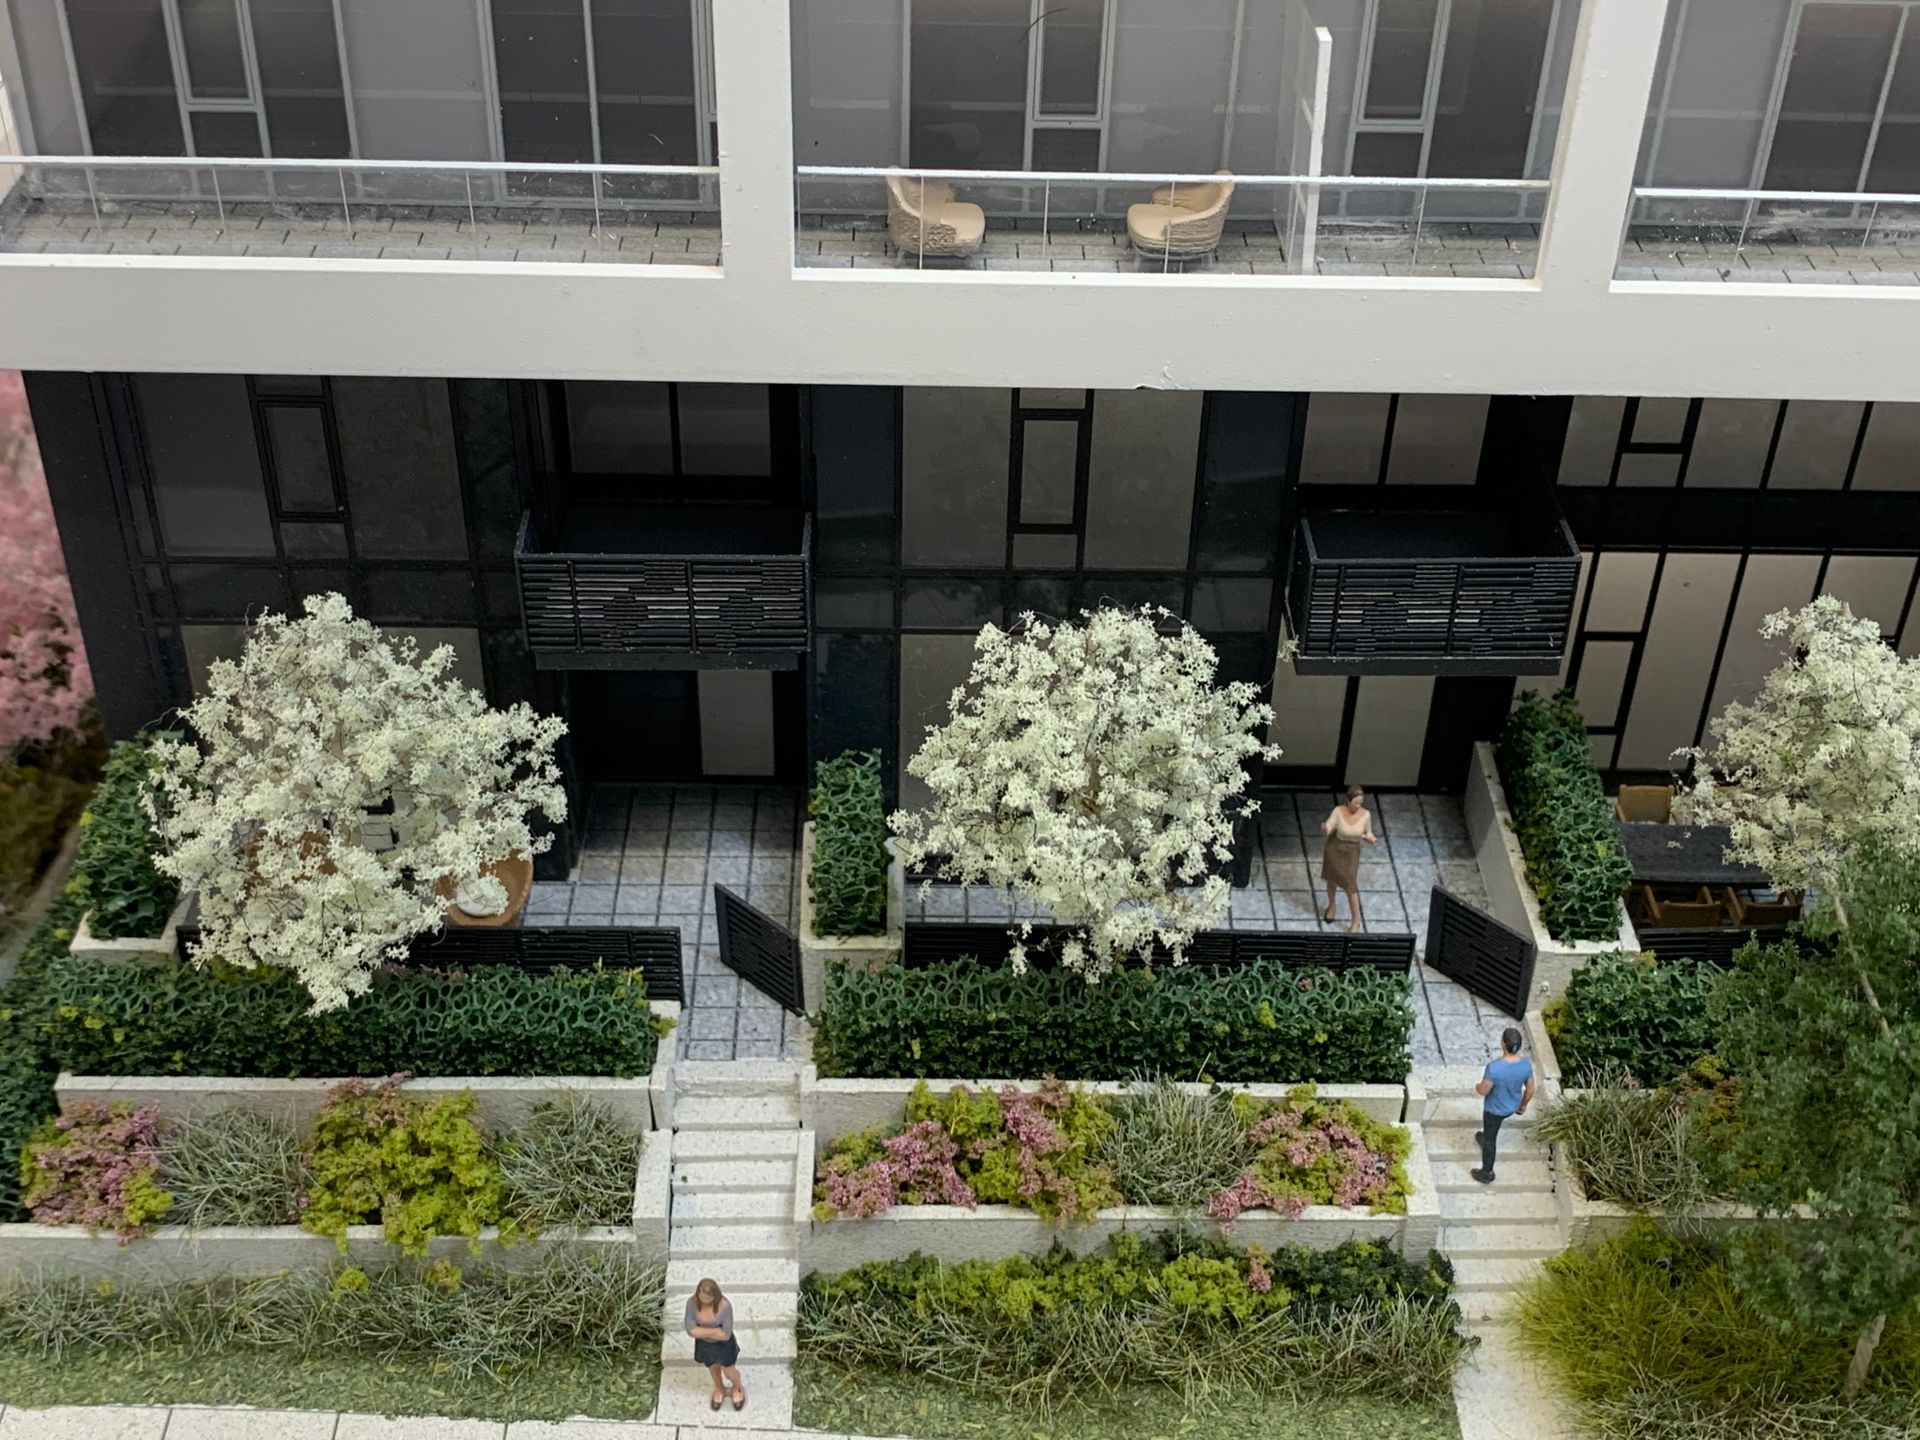 vue tonwhomes at Vue (638 Whiting Way, Coquitlam West, Coquitlam)